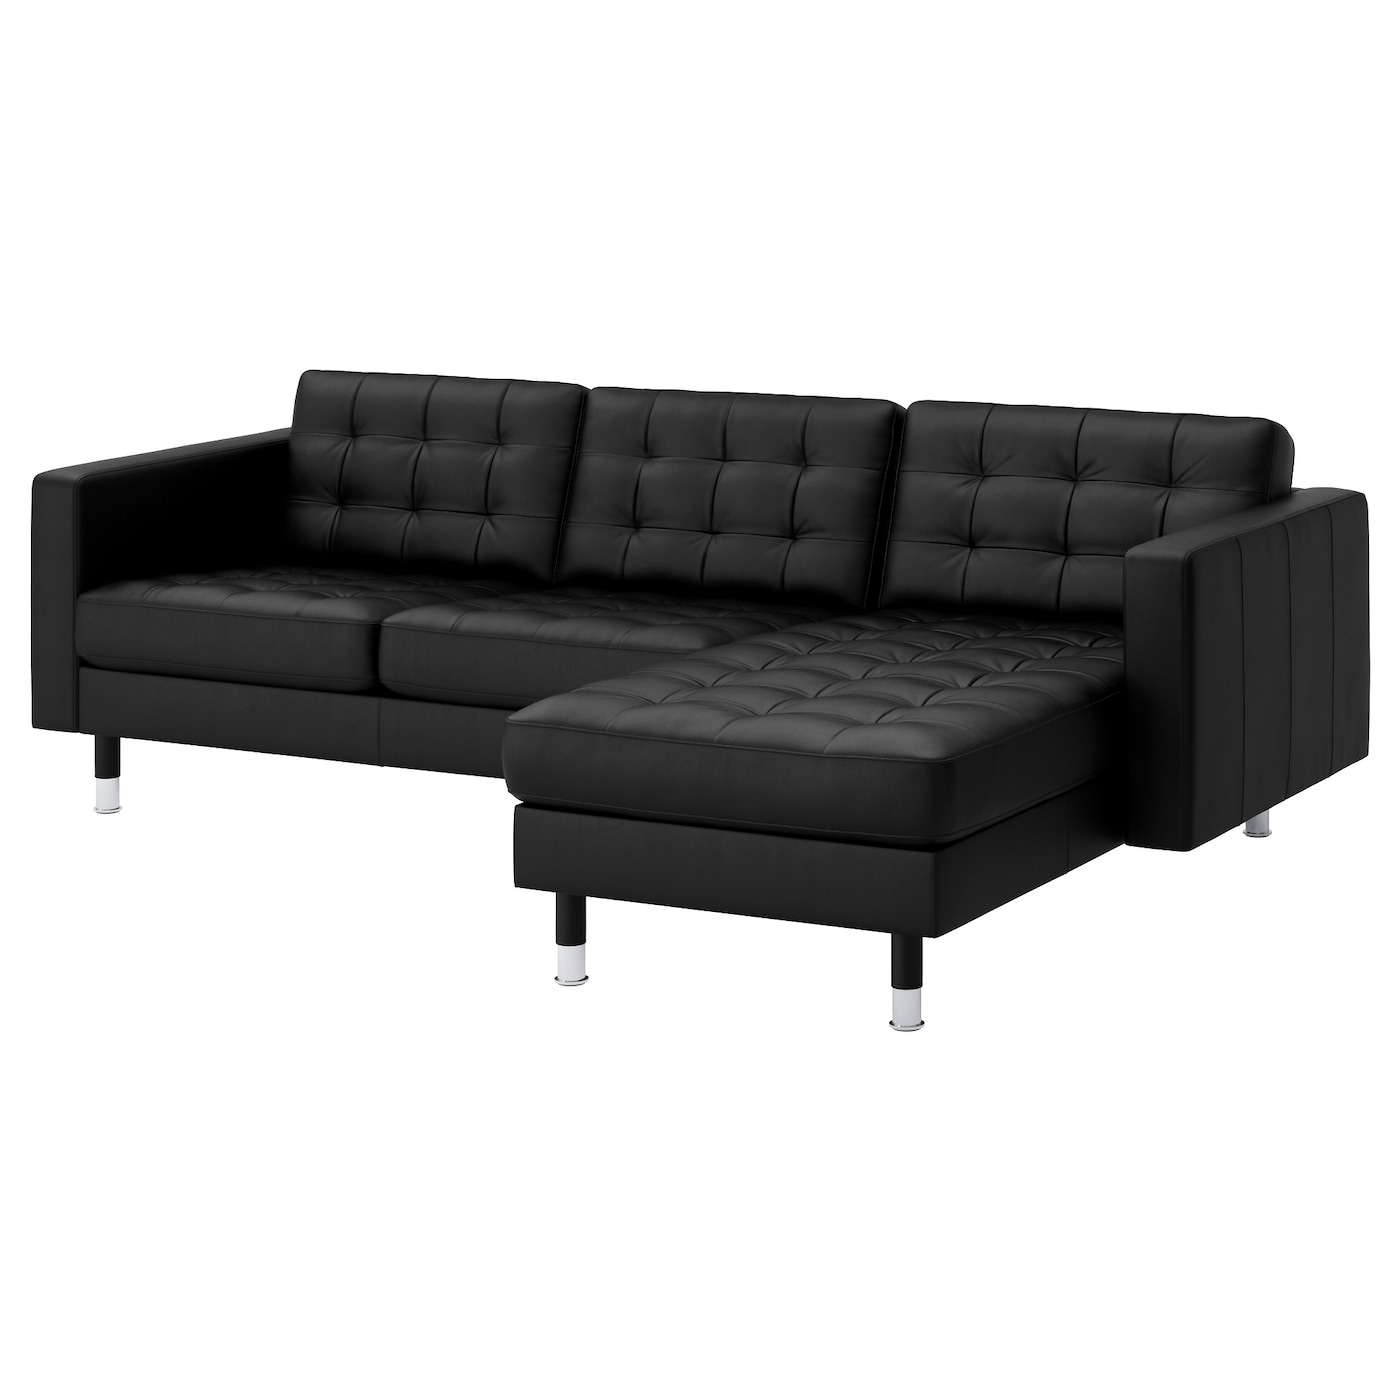 Small sofa 2 seater sofa ikea for Chaise longue de salon